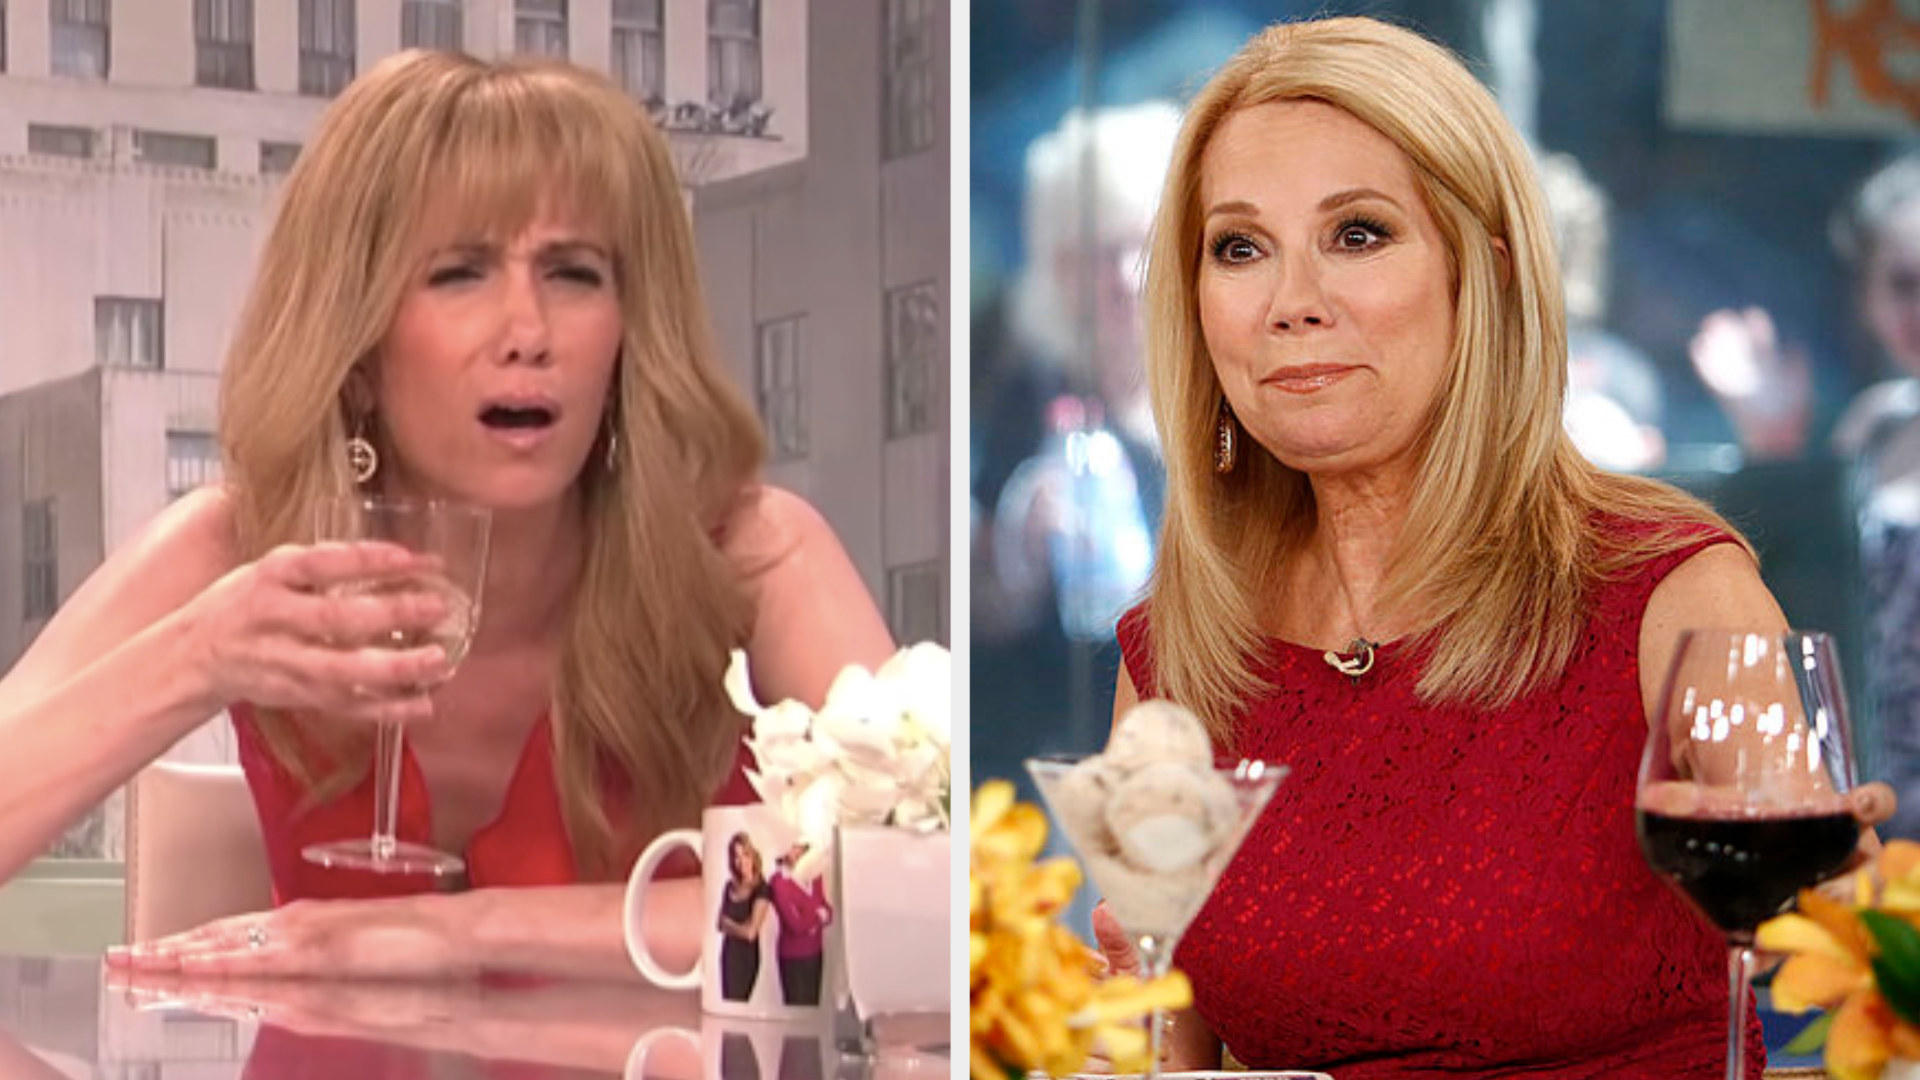 Kristen Wiig drinking a glass of wine in a red dress side by side with Kathie Lee Gifford drinking a glass of wine in a red dress